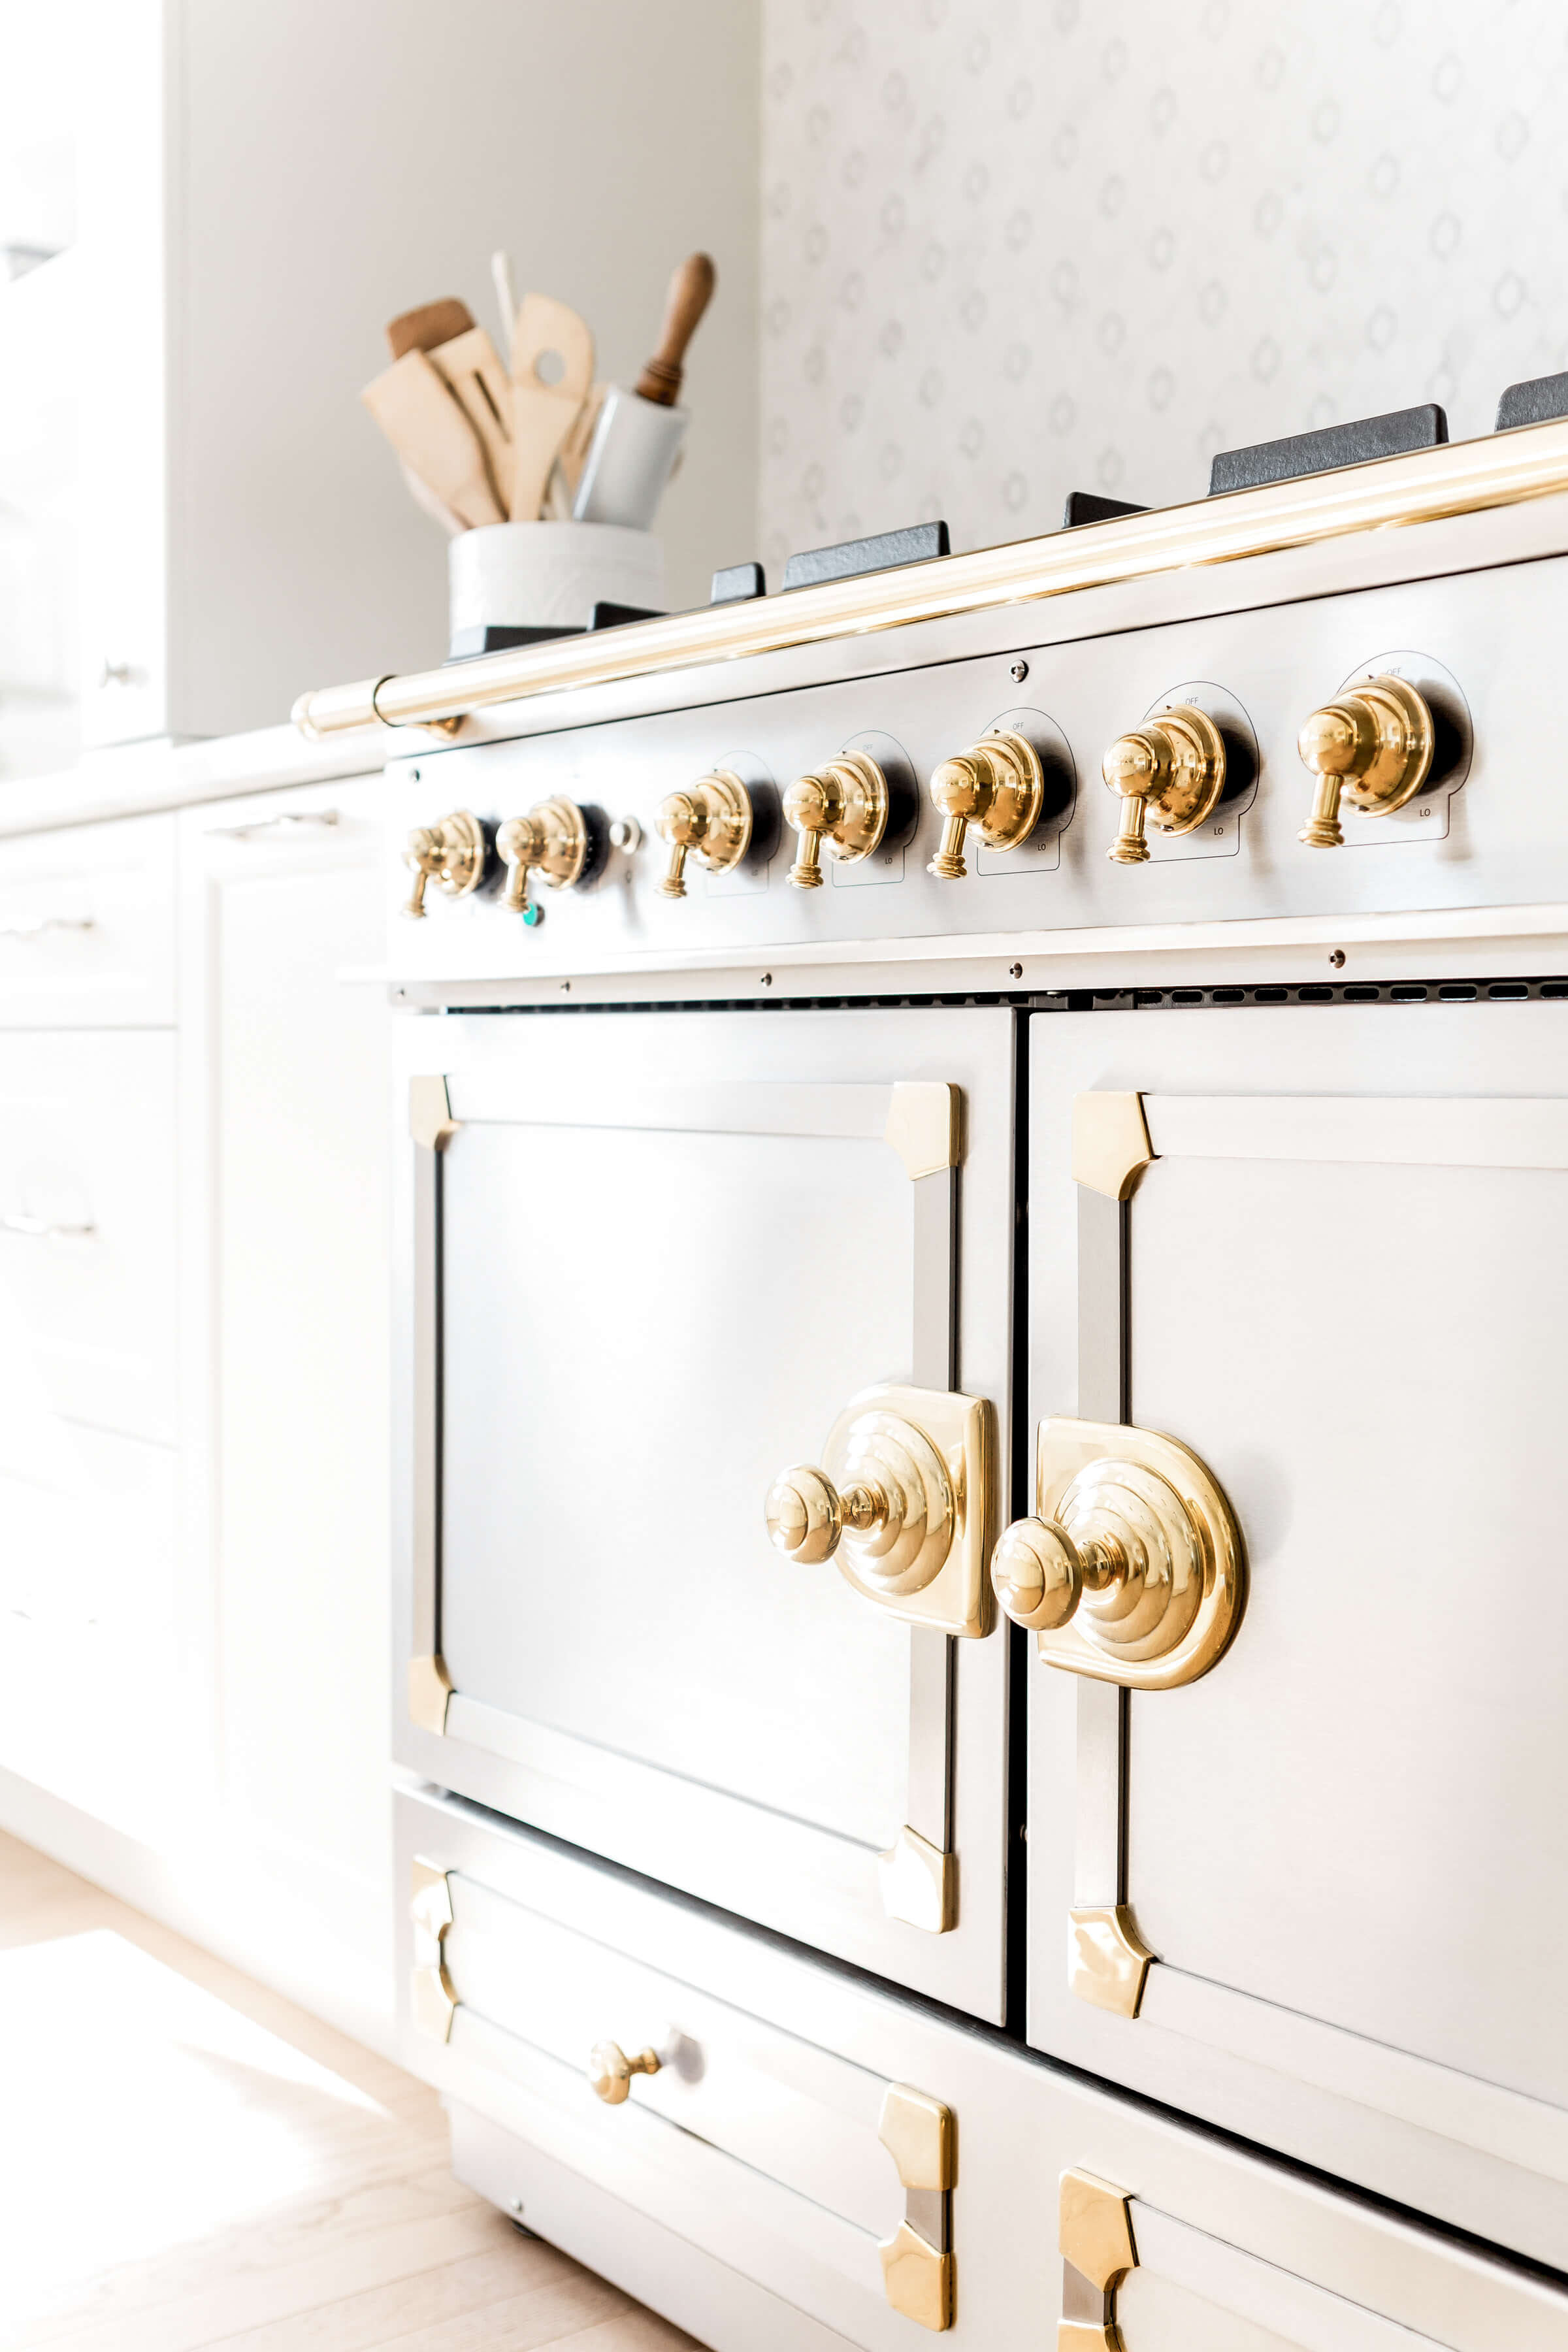 French Provincial Lighting Australia Best Tips You Ll Ever Need French Provincial Kitchen Verity Jayne